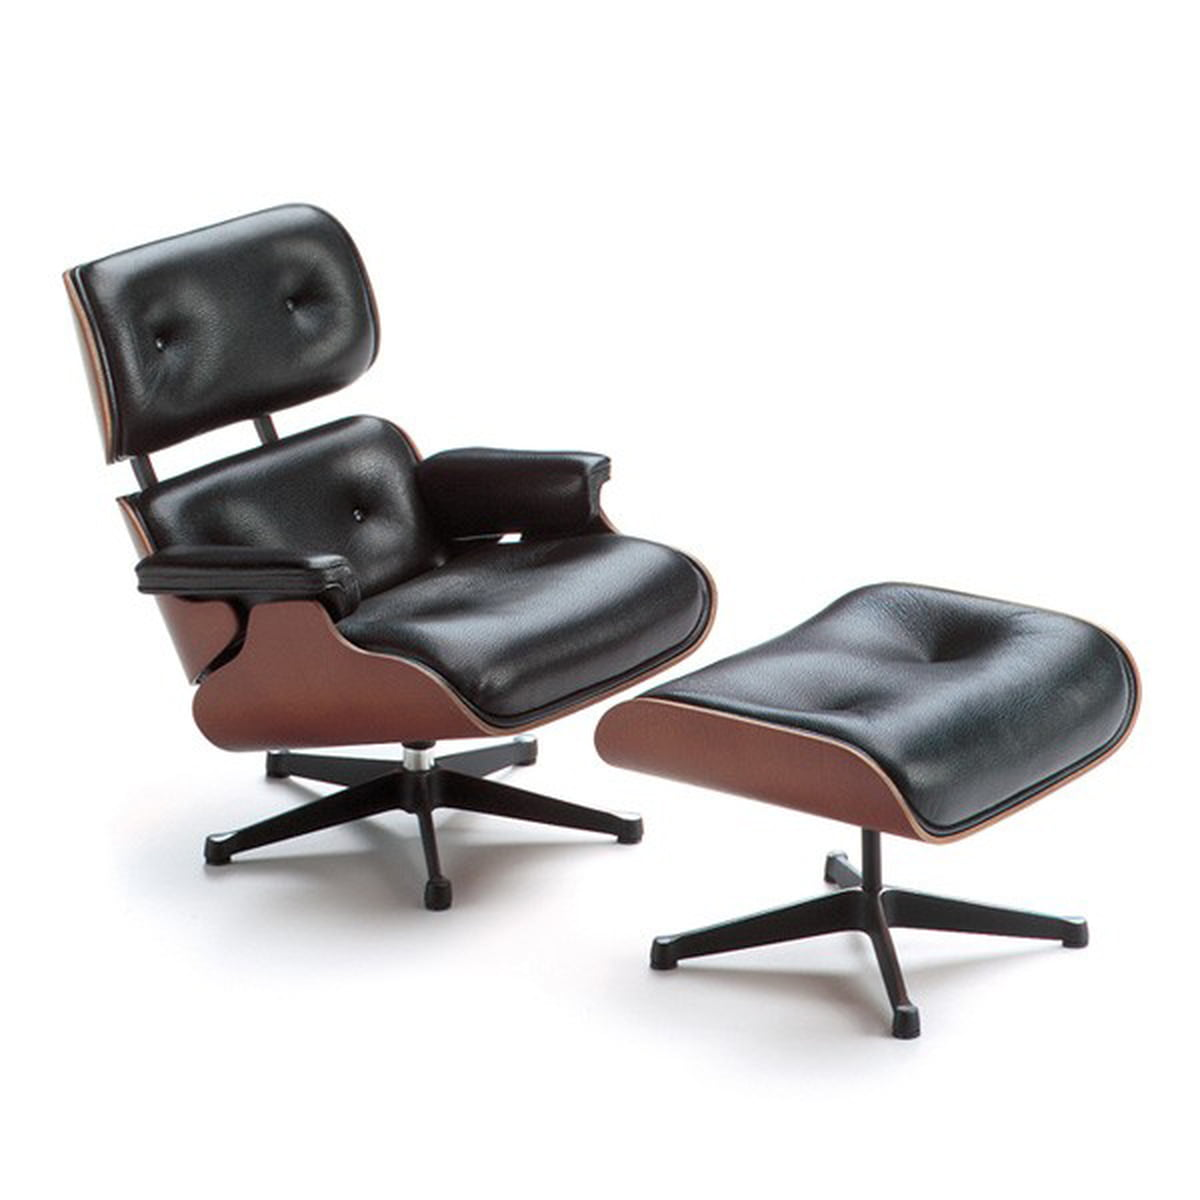 Etonnant Vitra   Miniature Lounge Chair U0026 Ottoman